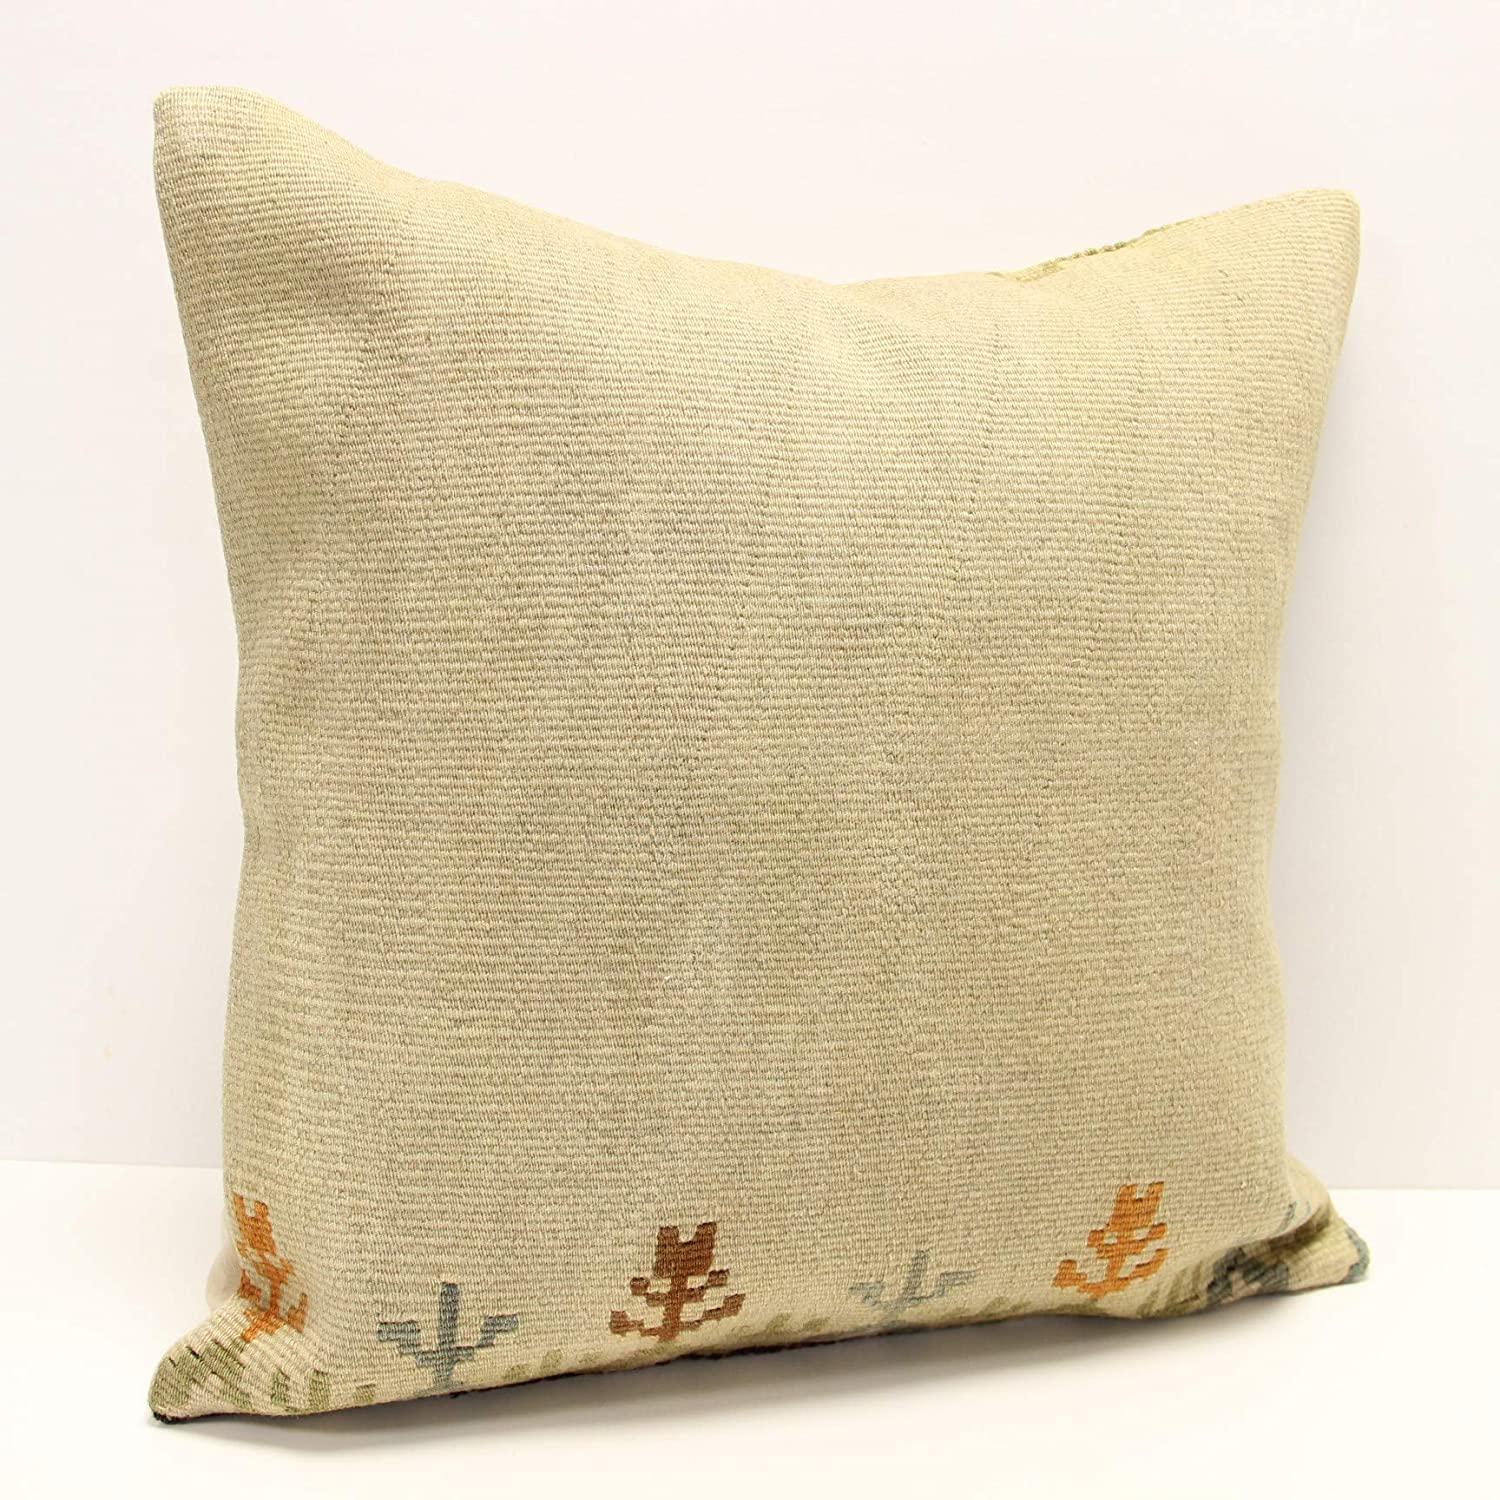 New Shipping Free Oakland Mall Throw kilim Pillow cover 20x20 handmade tra nomadic bolster inch